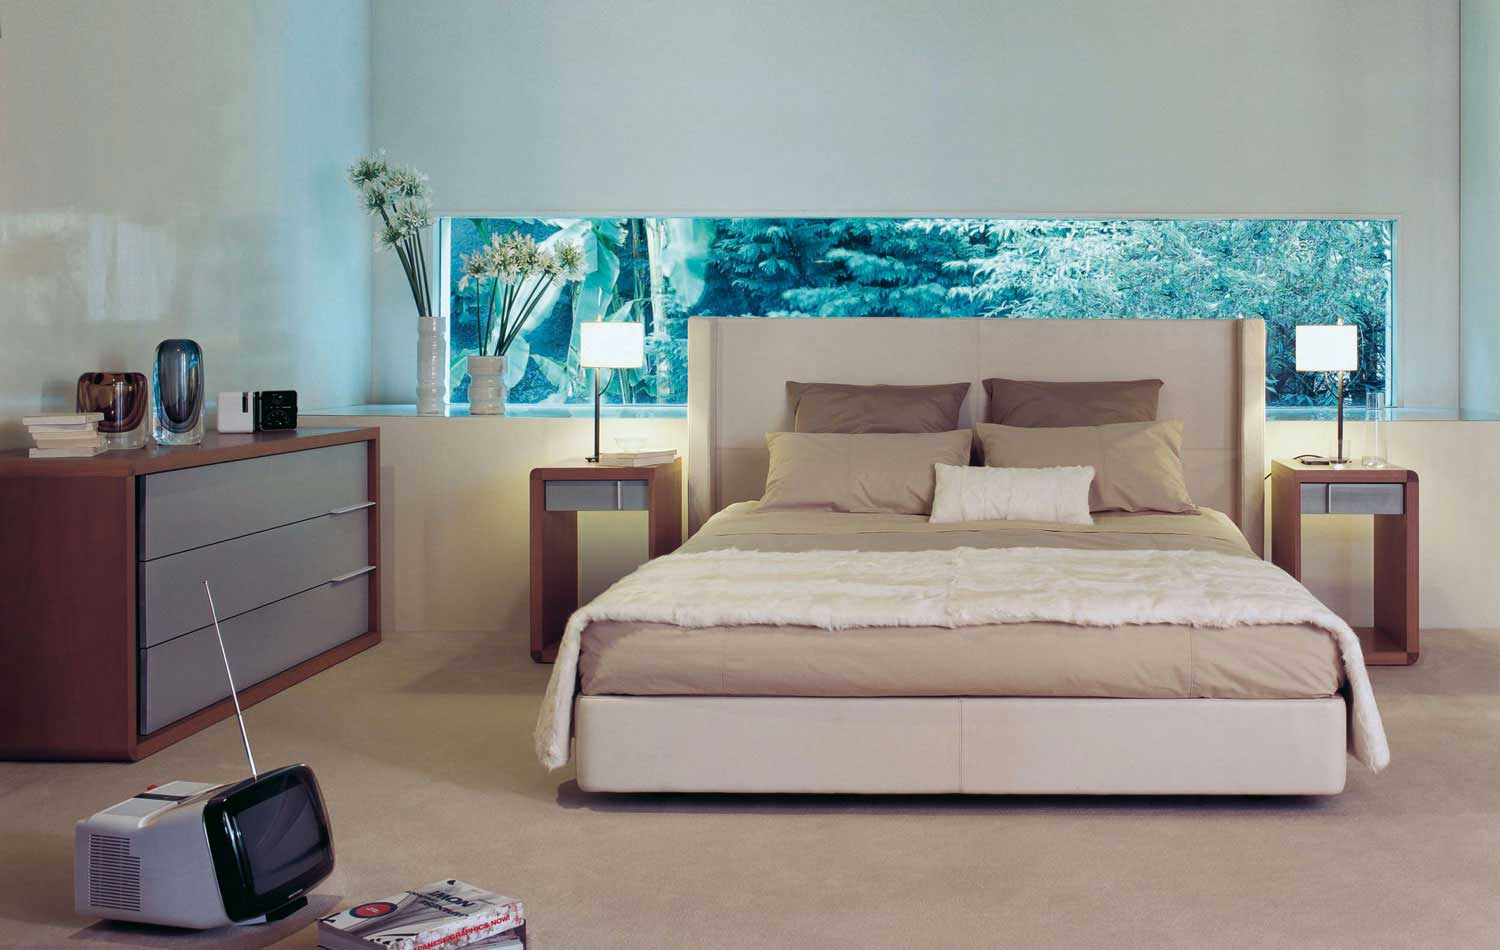 Bedrooms from roche bobois Decor bedroom